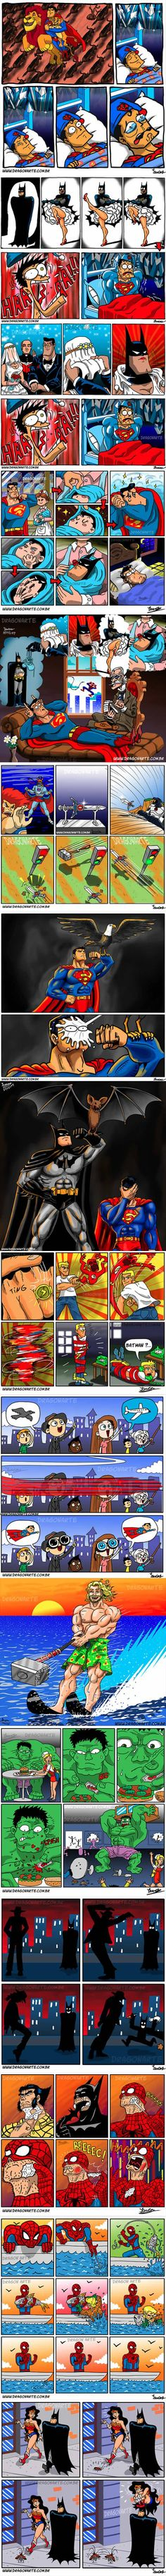 The Funniest Superhero Comics Collection (Part 2)